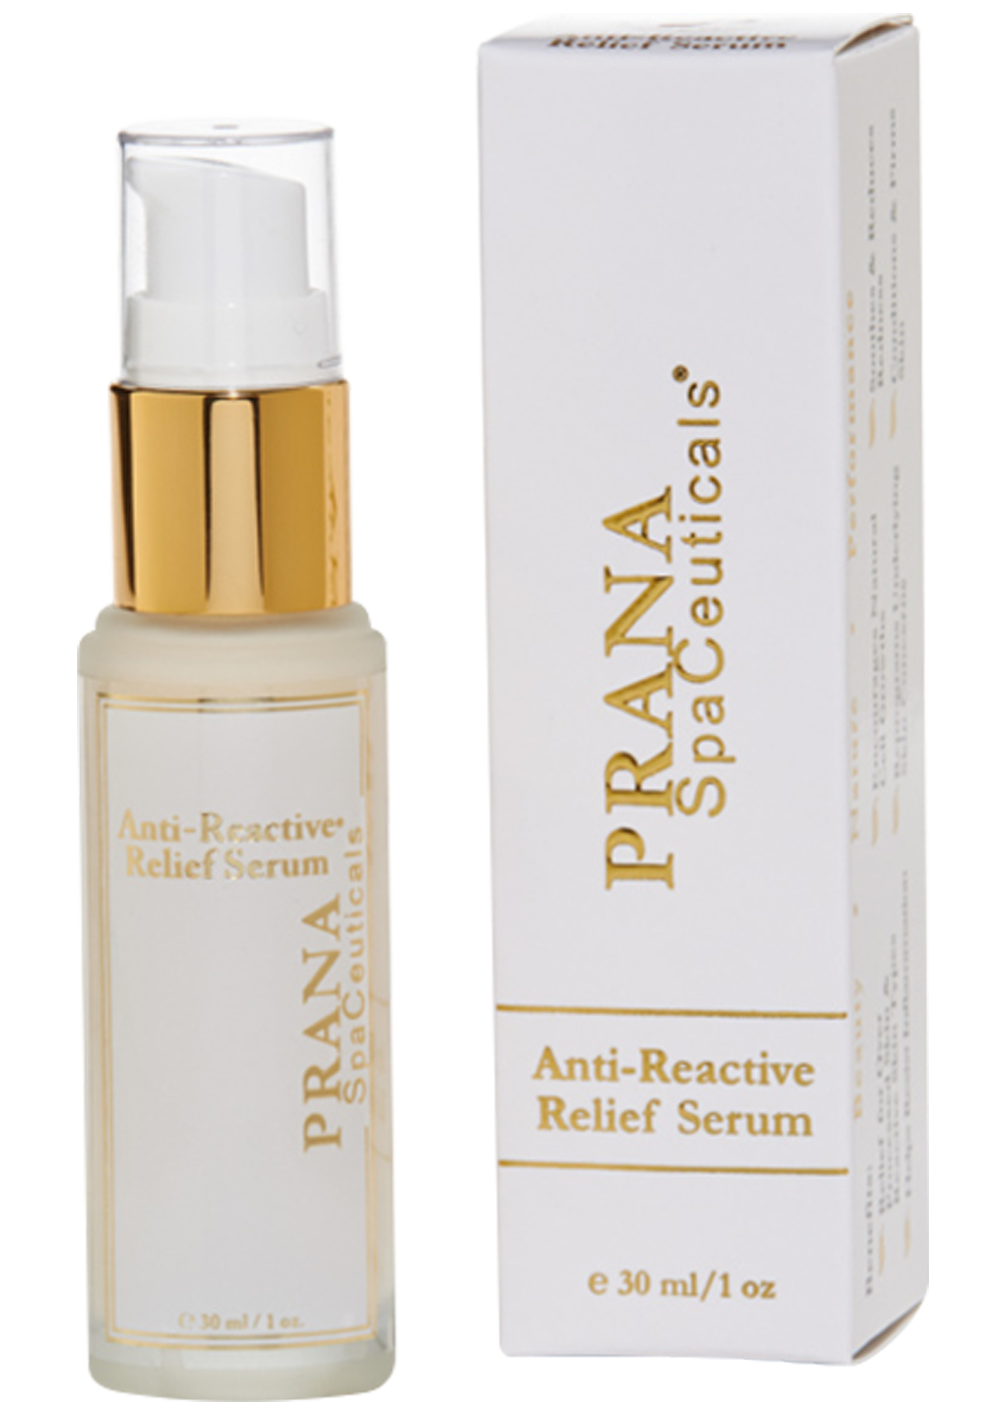 Anti-Reactive Relief Serum